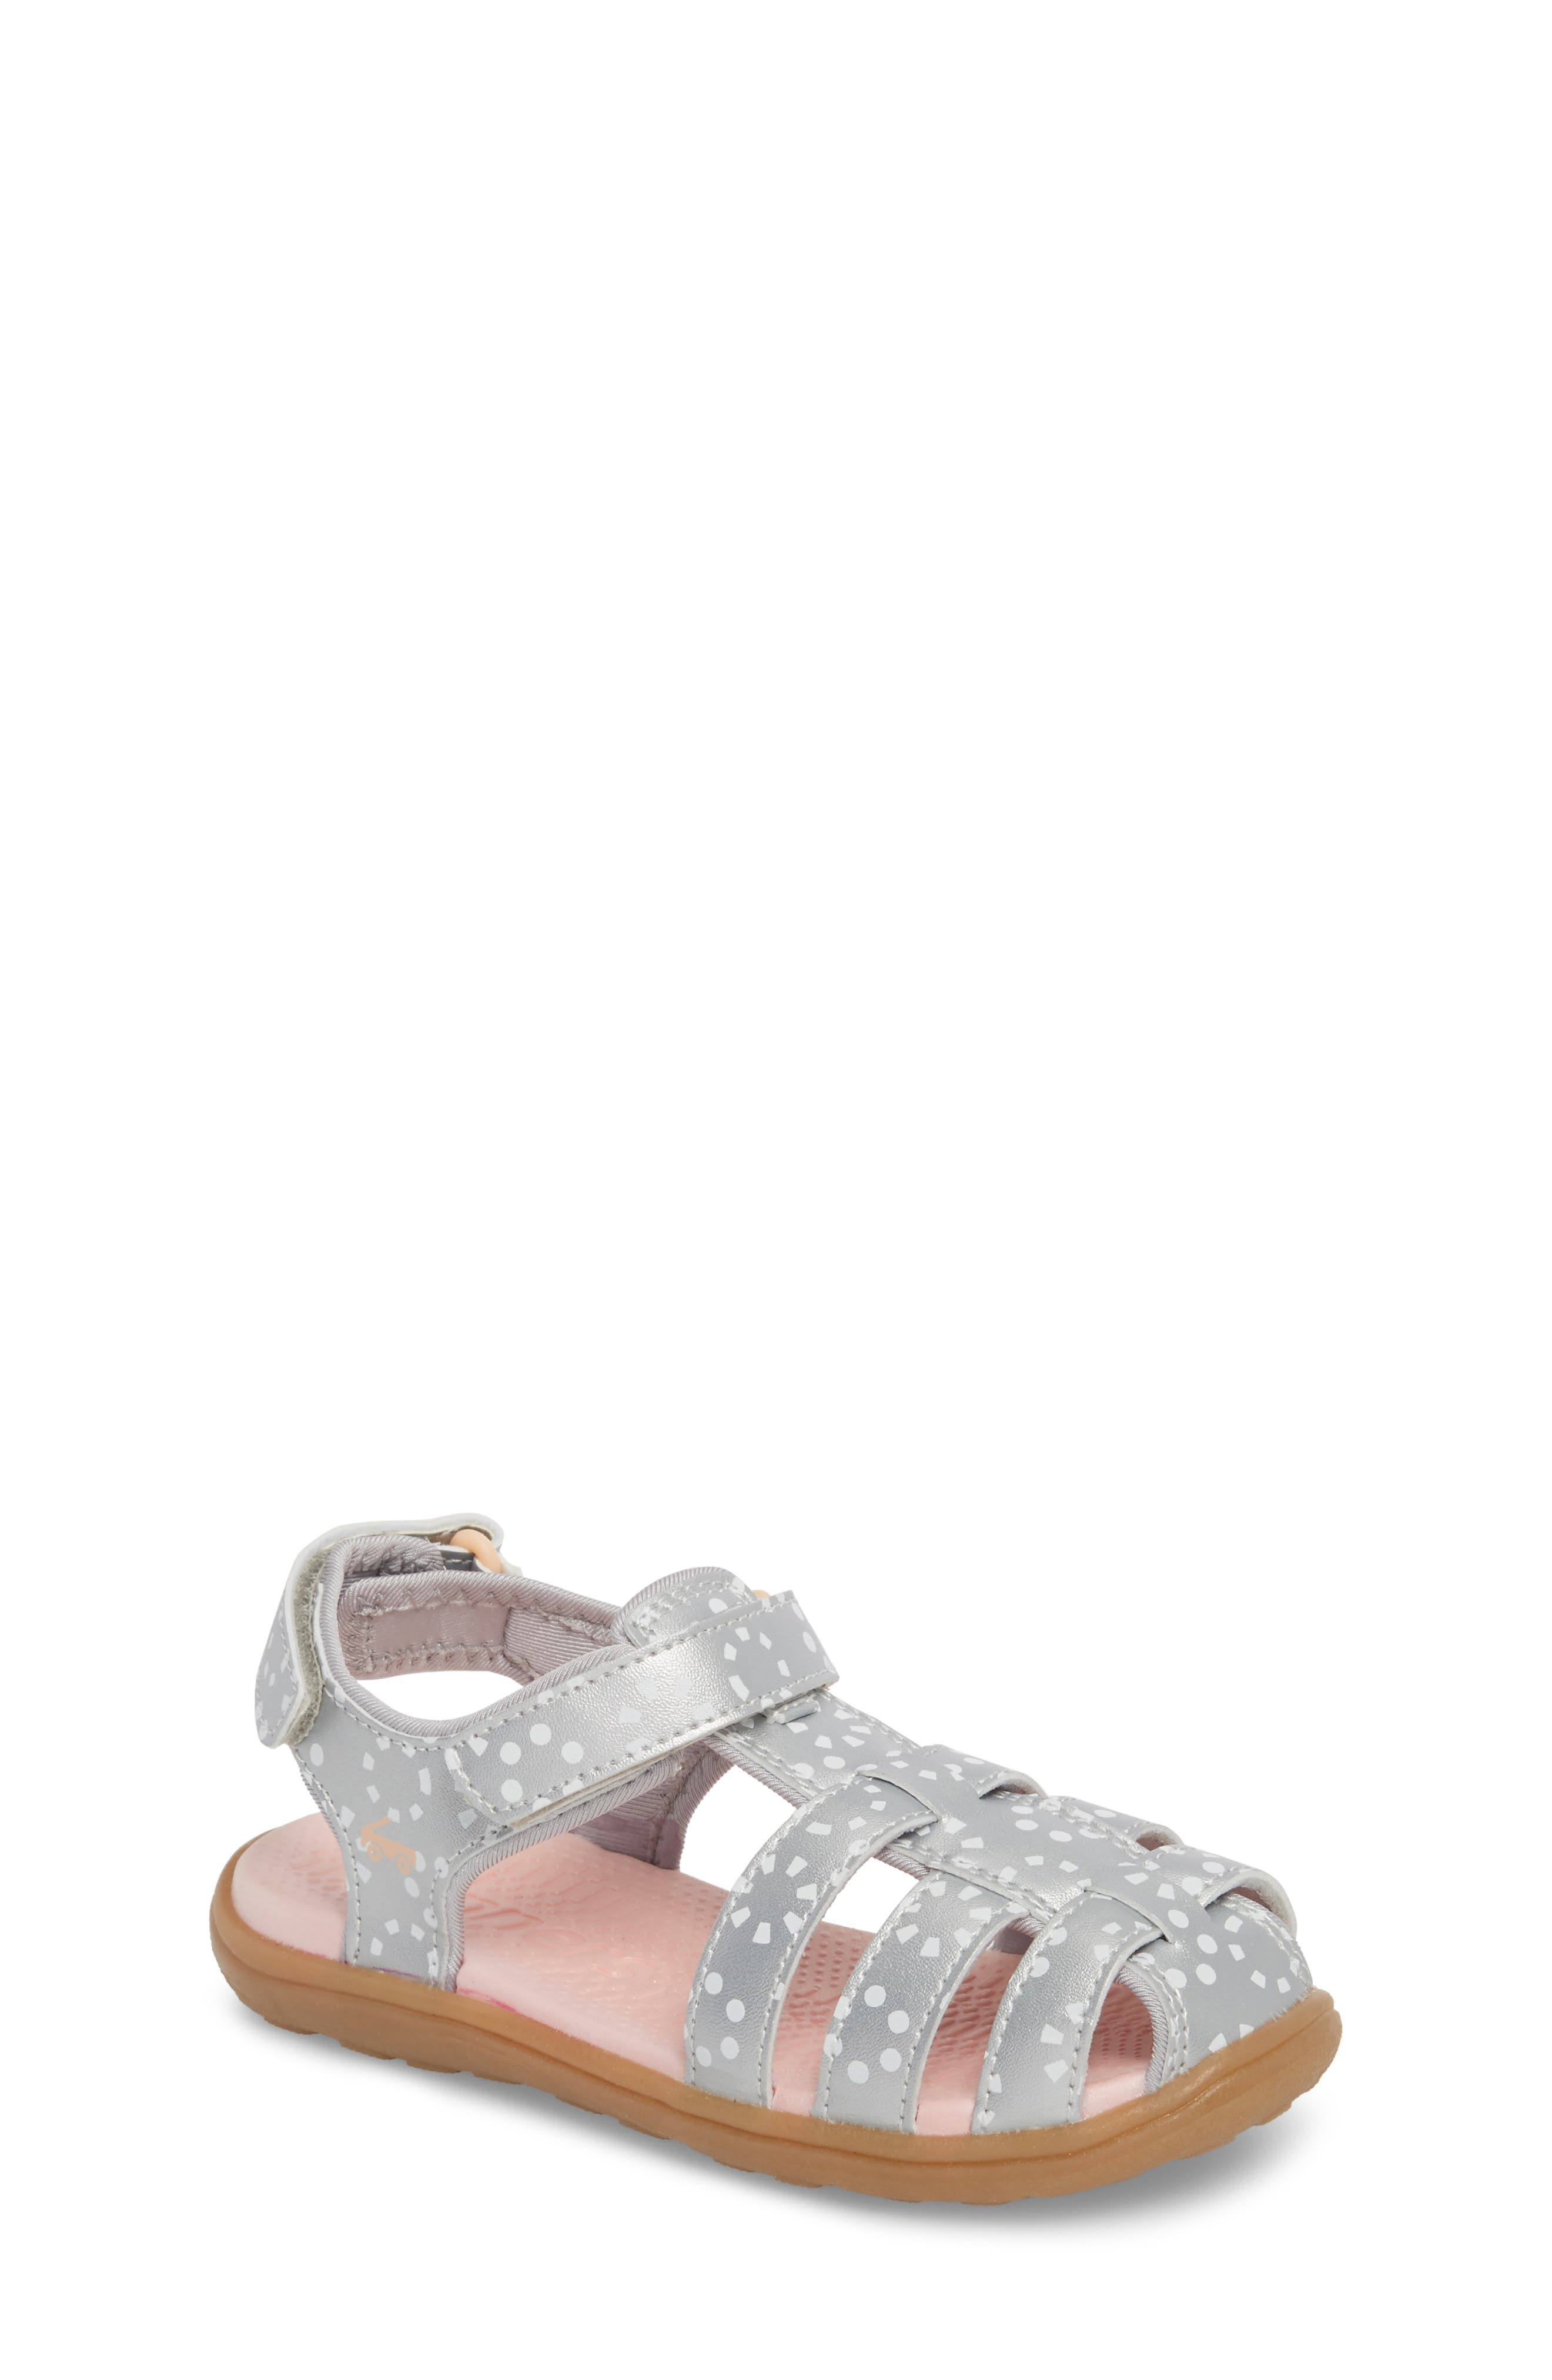 Paley Water Friendly Fisherman Sandal,                         Main,                         color, Silver/ White